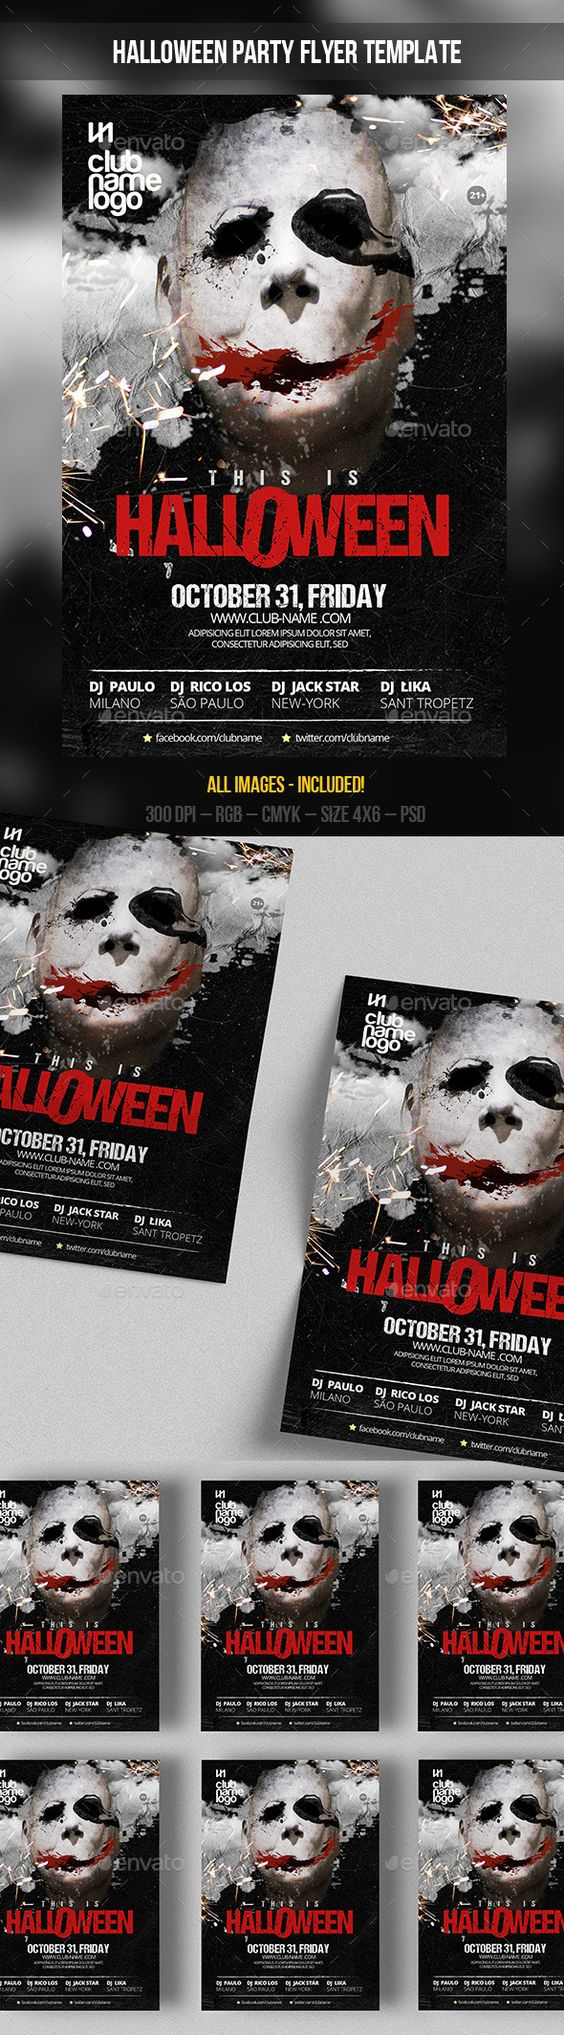 Halloween Party Flyer Template | Cleanses, Flyer template and ...